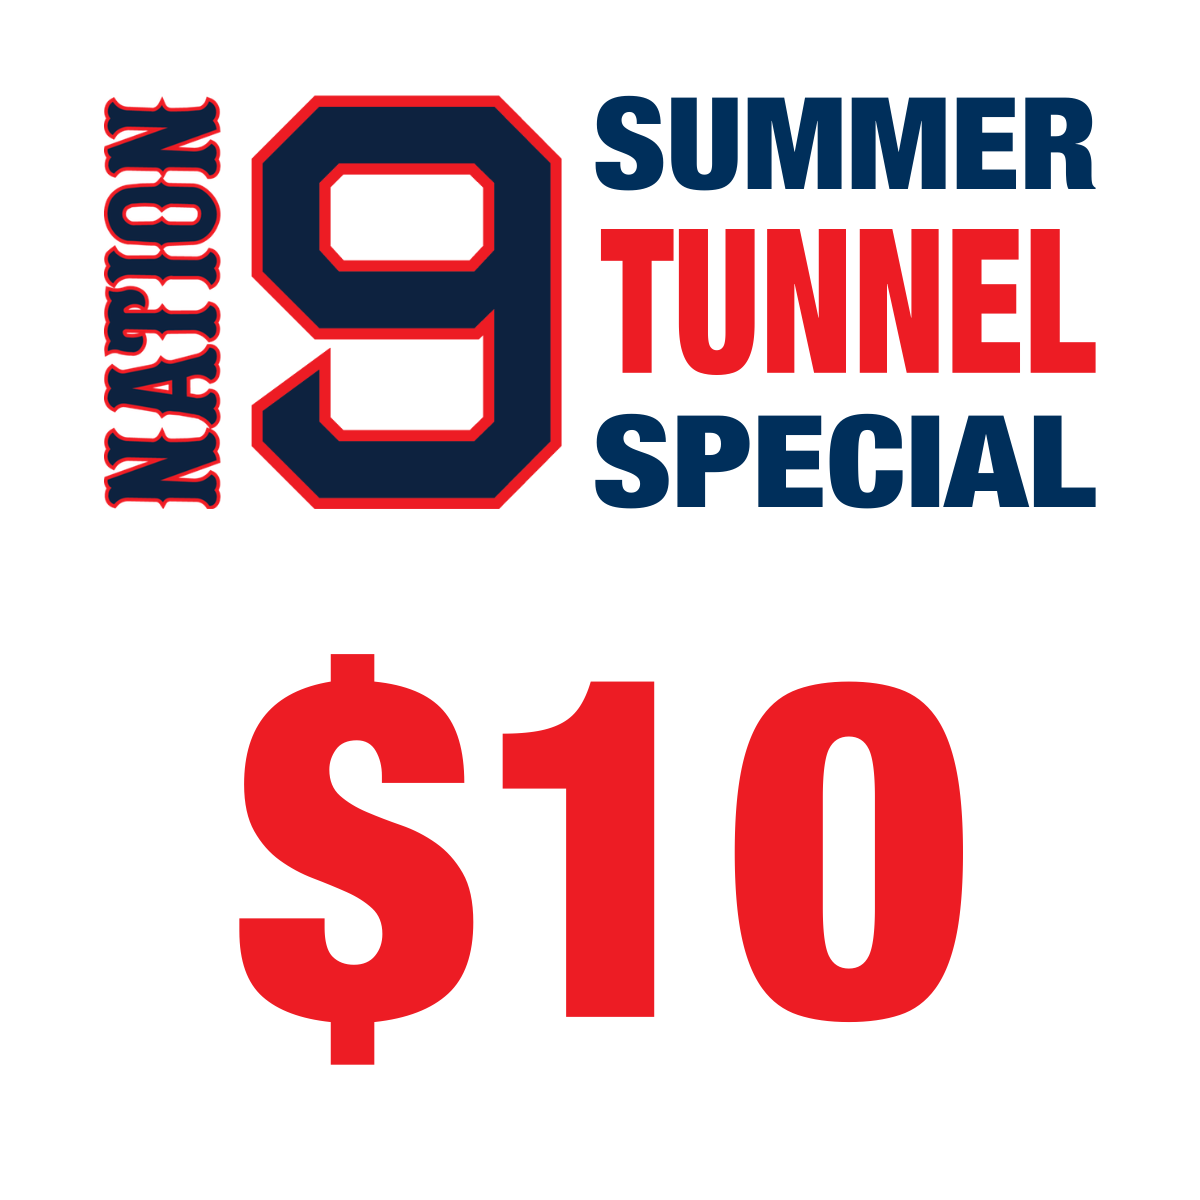 tunnelspecial.png